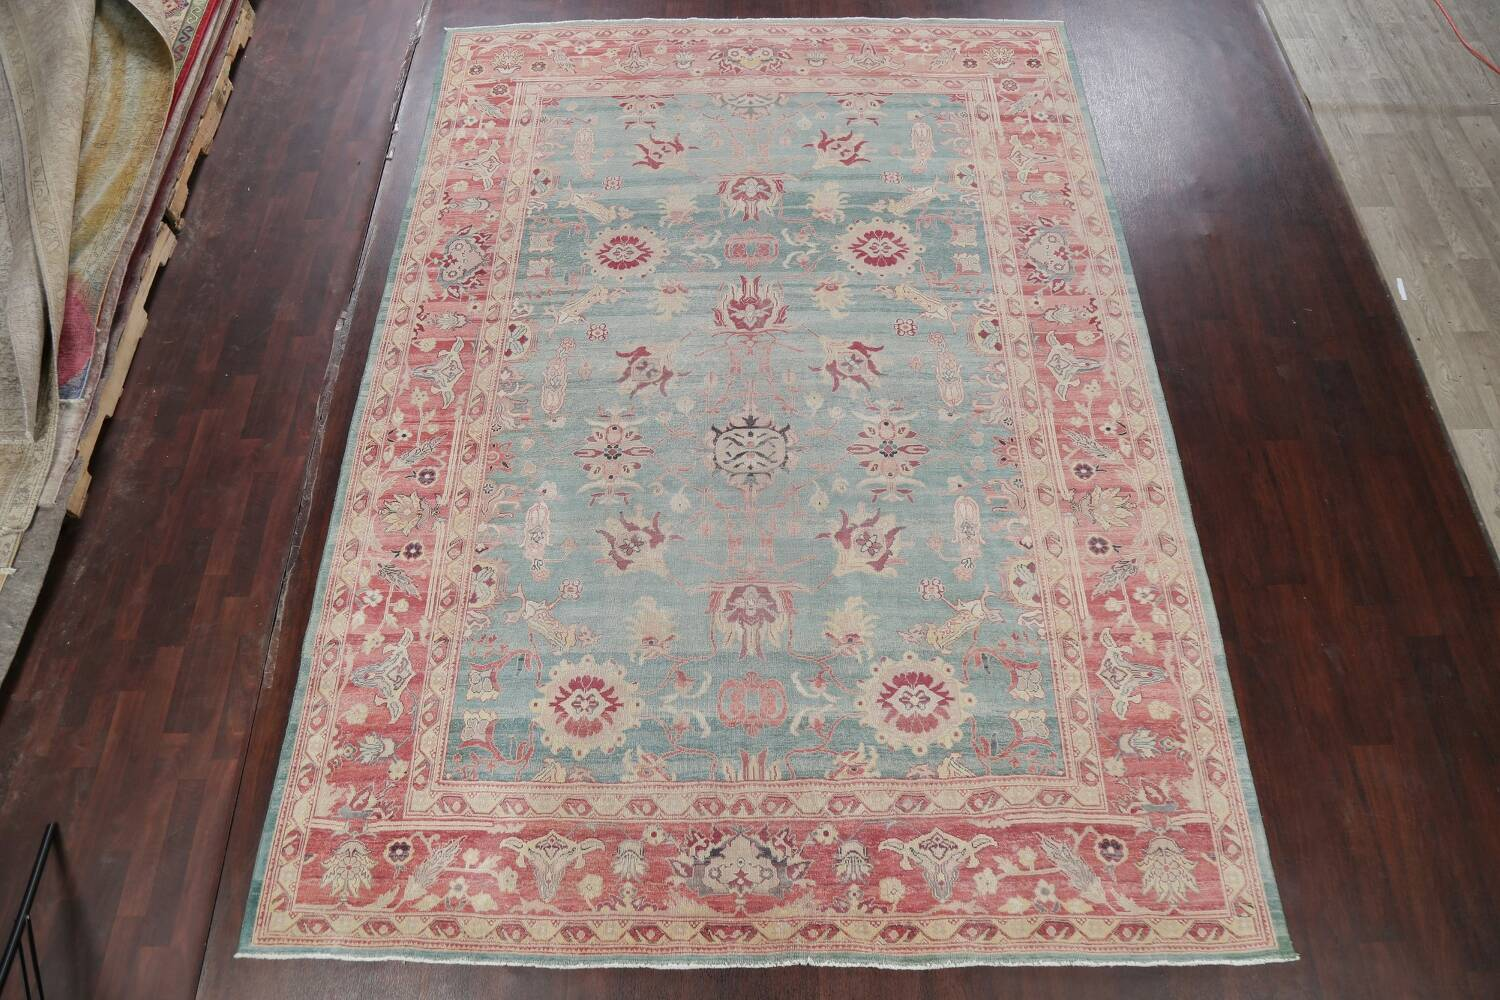 Vegetable Dye Oushak Egyptian Area Rug 9x12 image 2